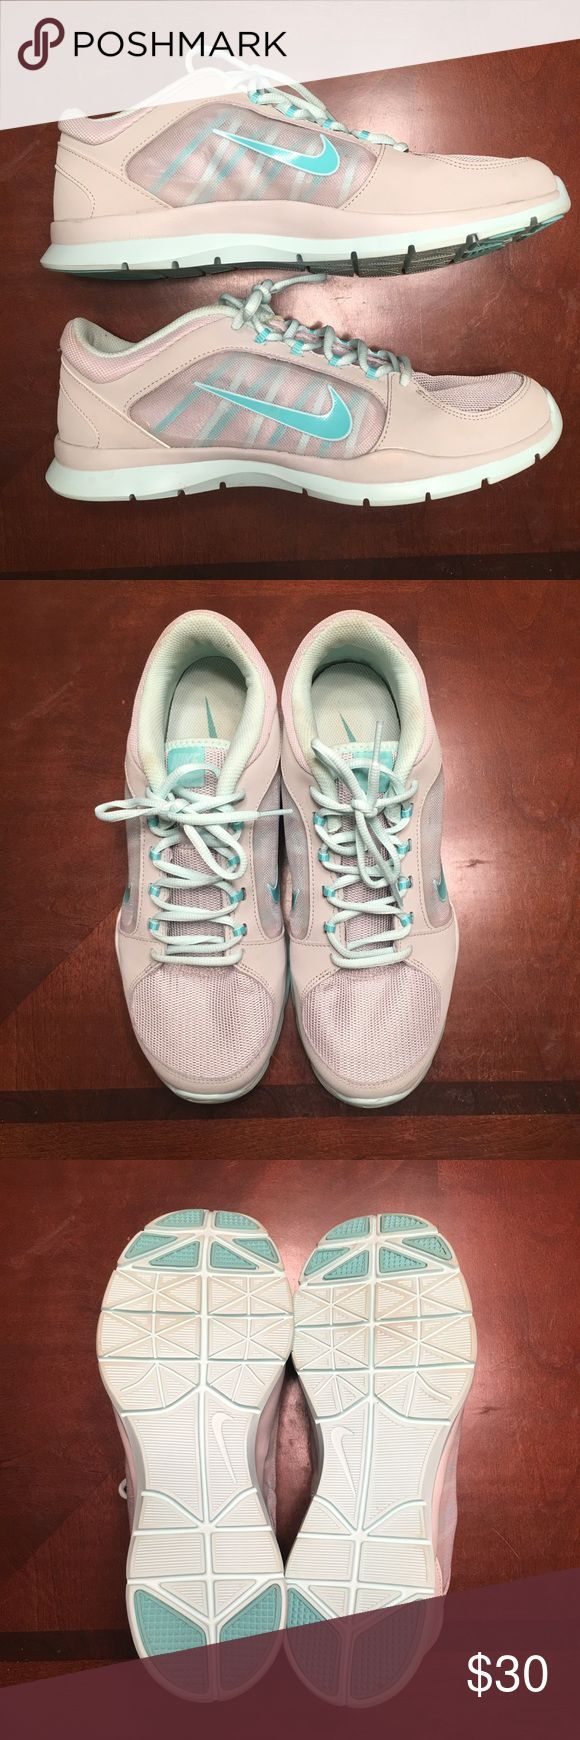 Nike Training Shoes Worn once! Perfect condition just don't wear them. Nike Shoes Athletic Shoes